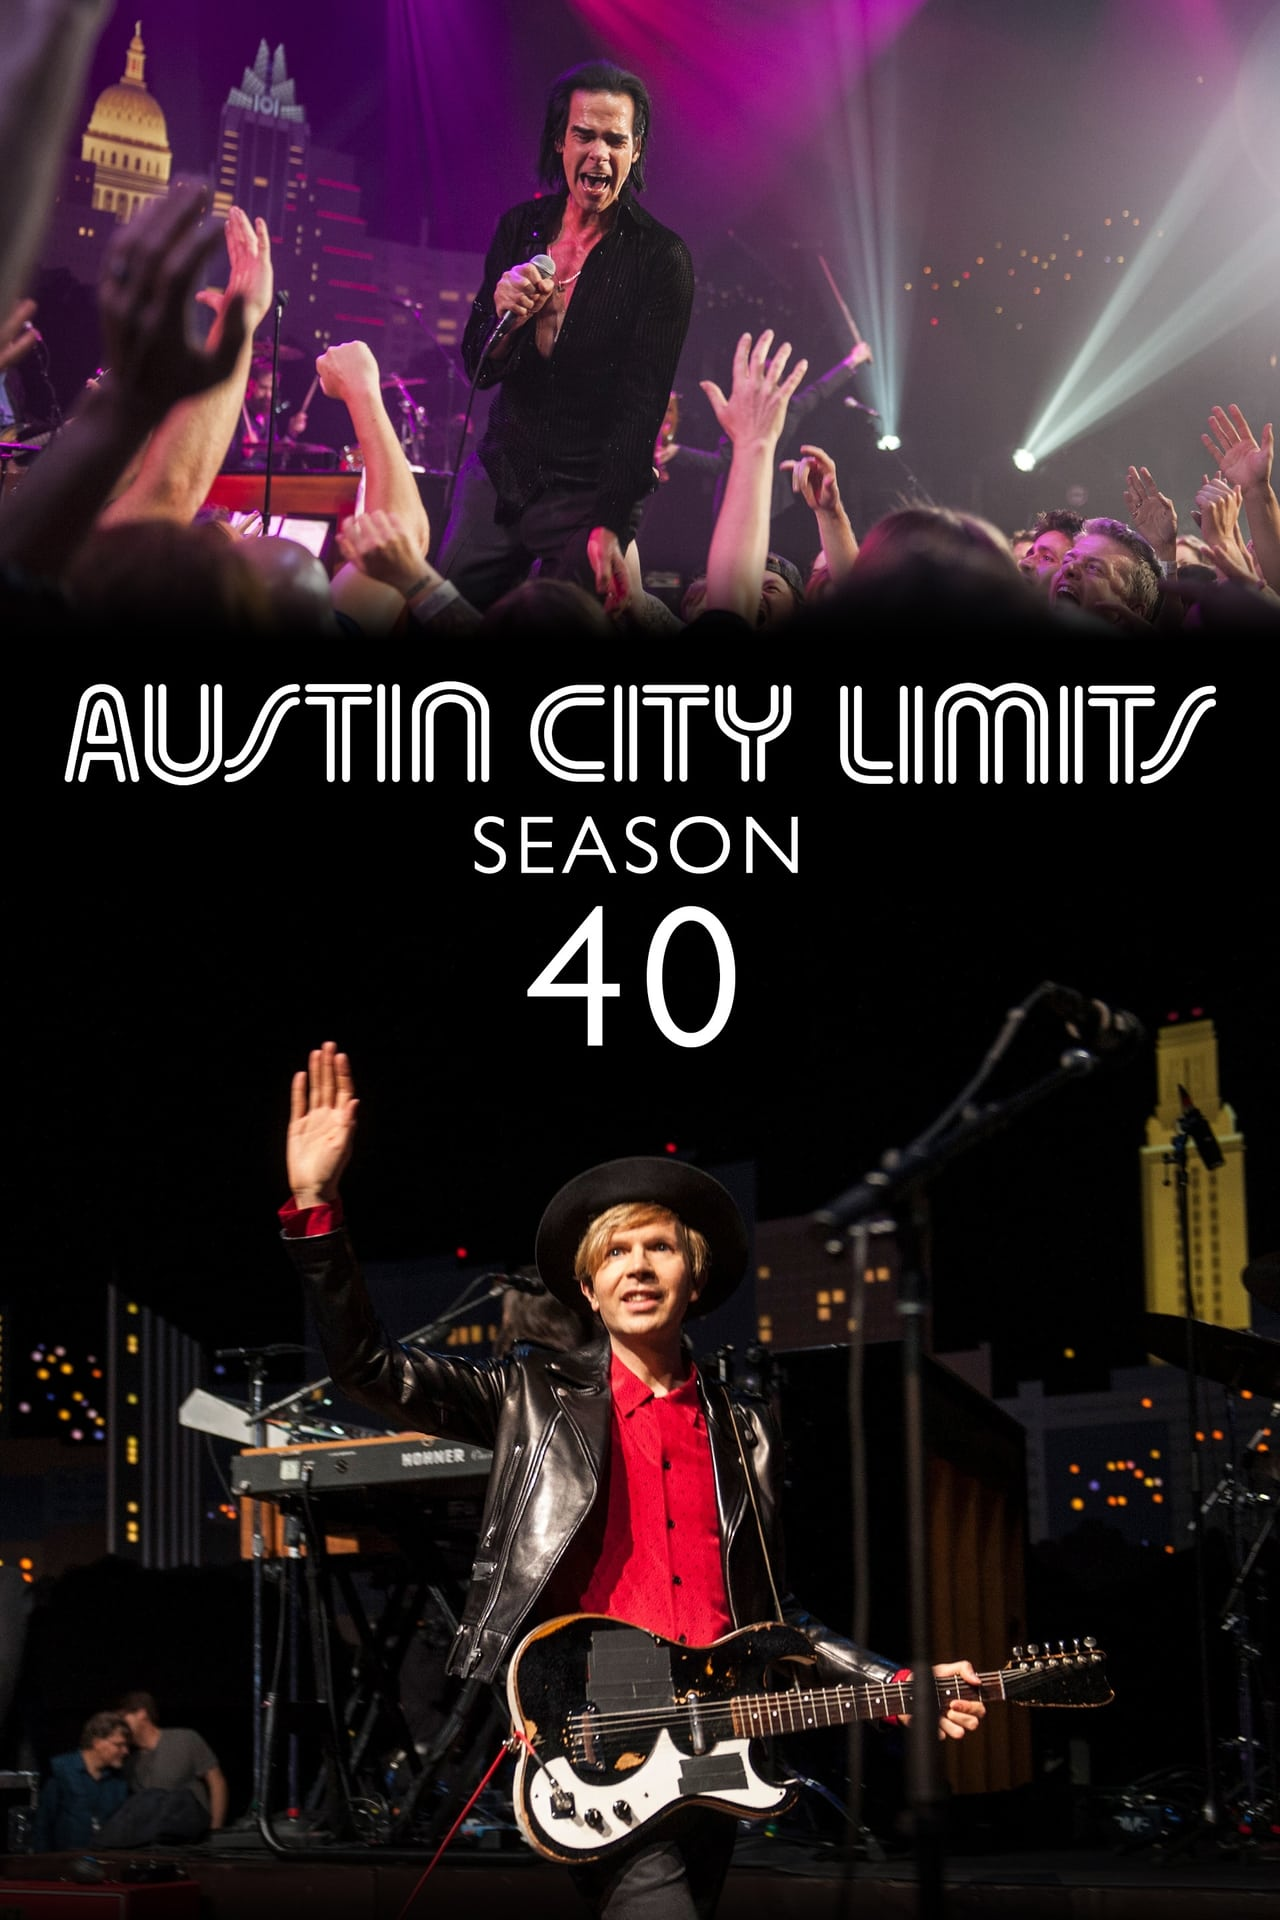 Austin City Limits Season 40 (2014) putlockers cafe